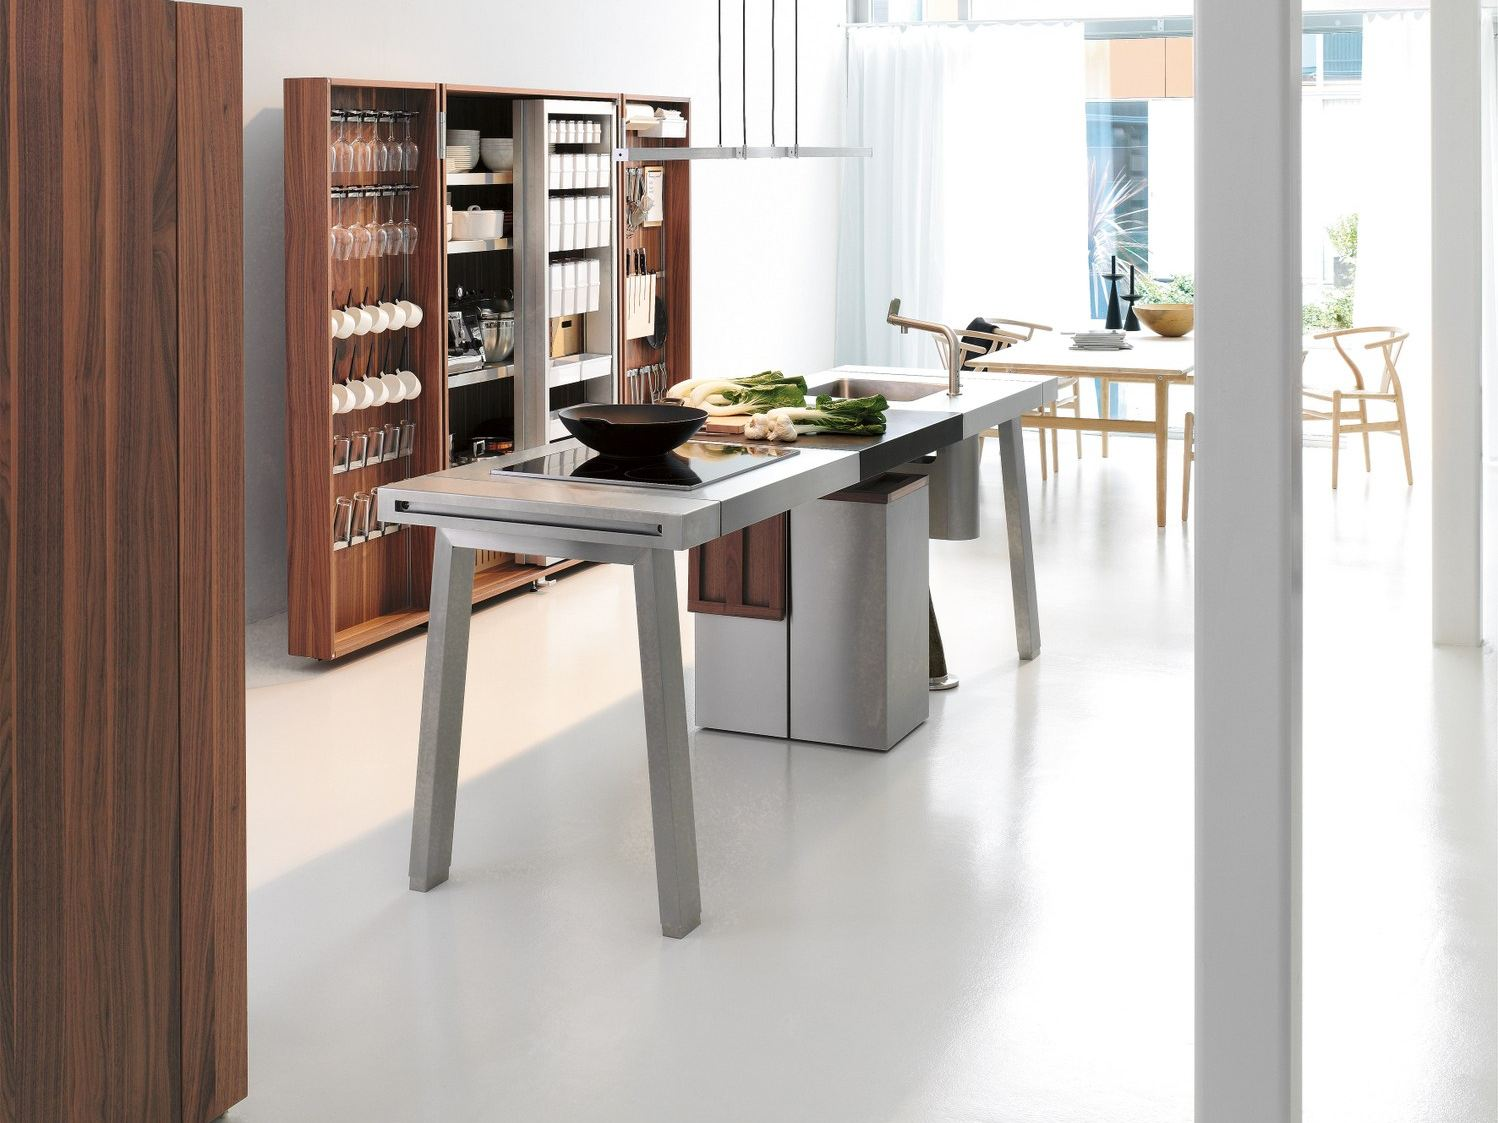 Bulthaup Bodenkirchen Fitted Kitchen B2 By Bulthaup Design Eoos